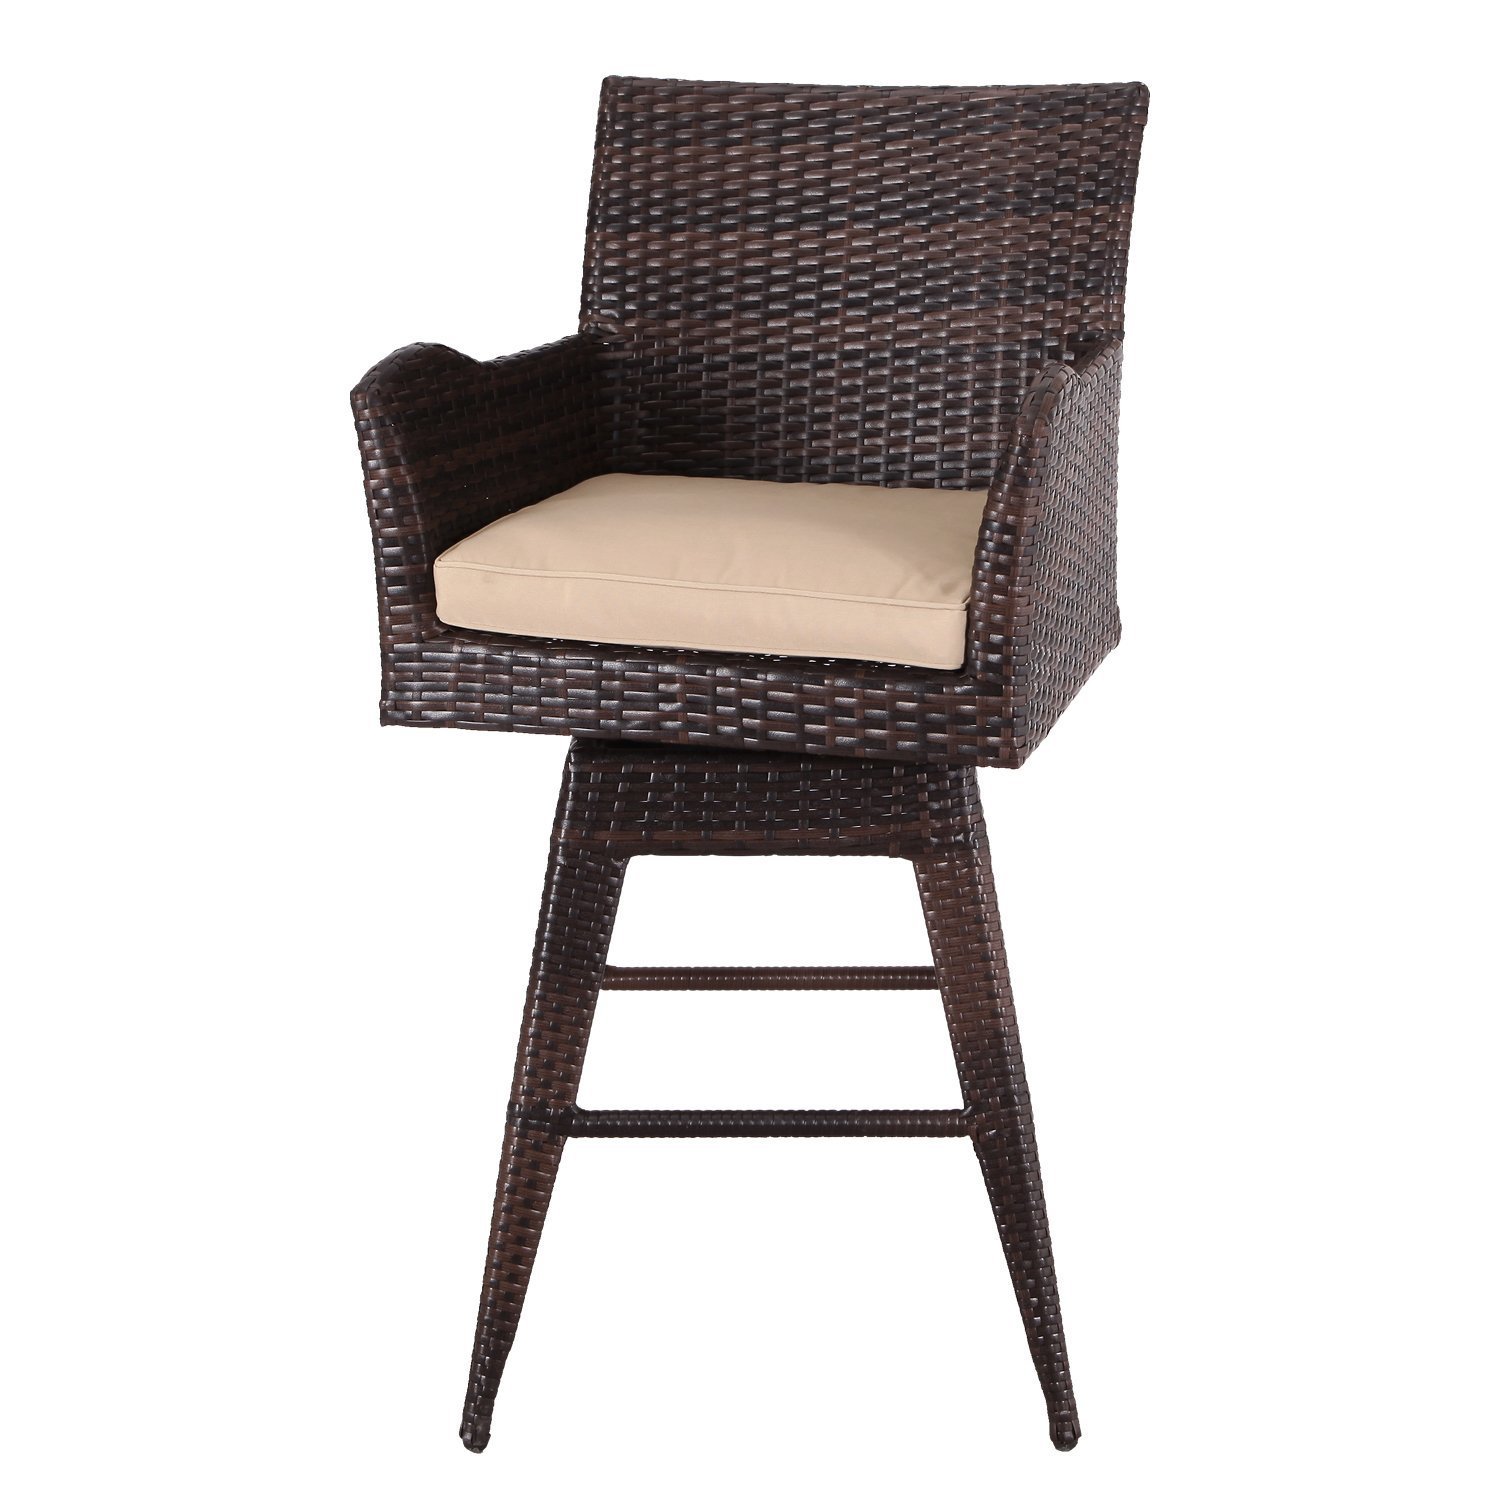 Adeco Patio Furniture Set Wicker Bar stools With Cushion  : 71cH3J0sZ0LSL1500 from www.ebay.com size 1500 x 1500 jpeg 183kB